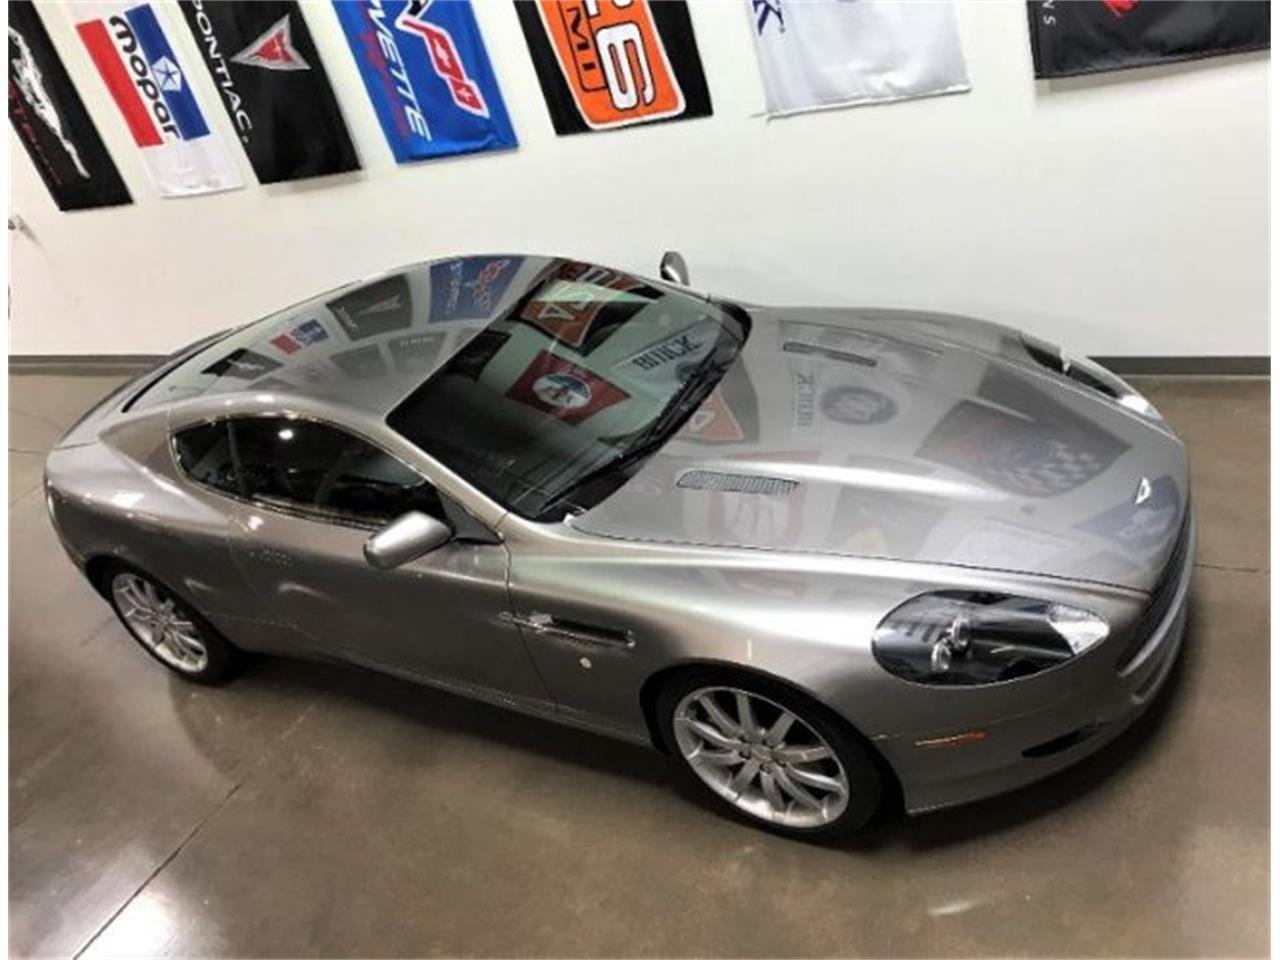 2006 Aston Martin DB9 for sale in Cadillac, MI – photo 26